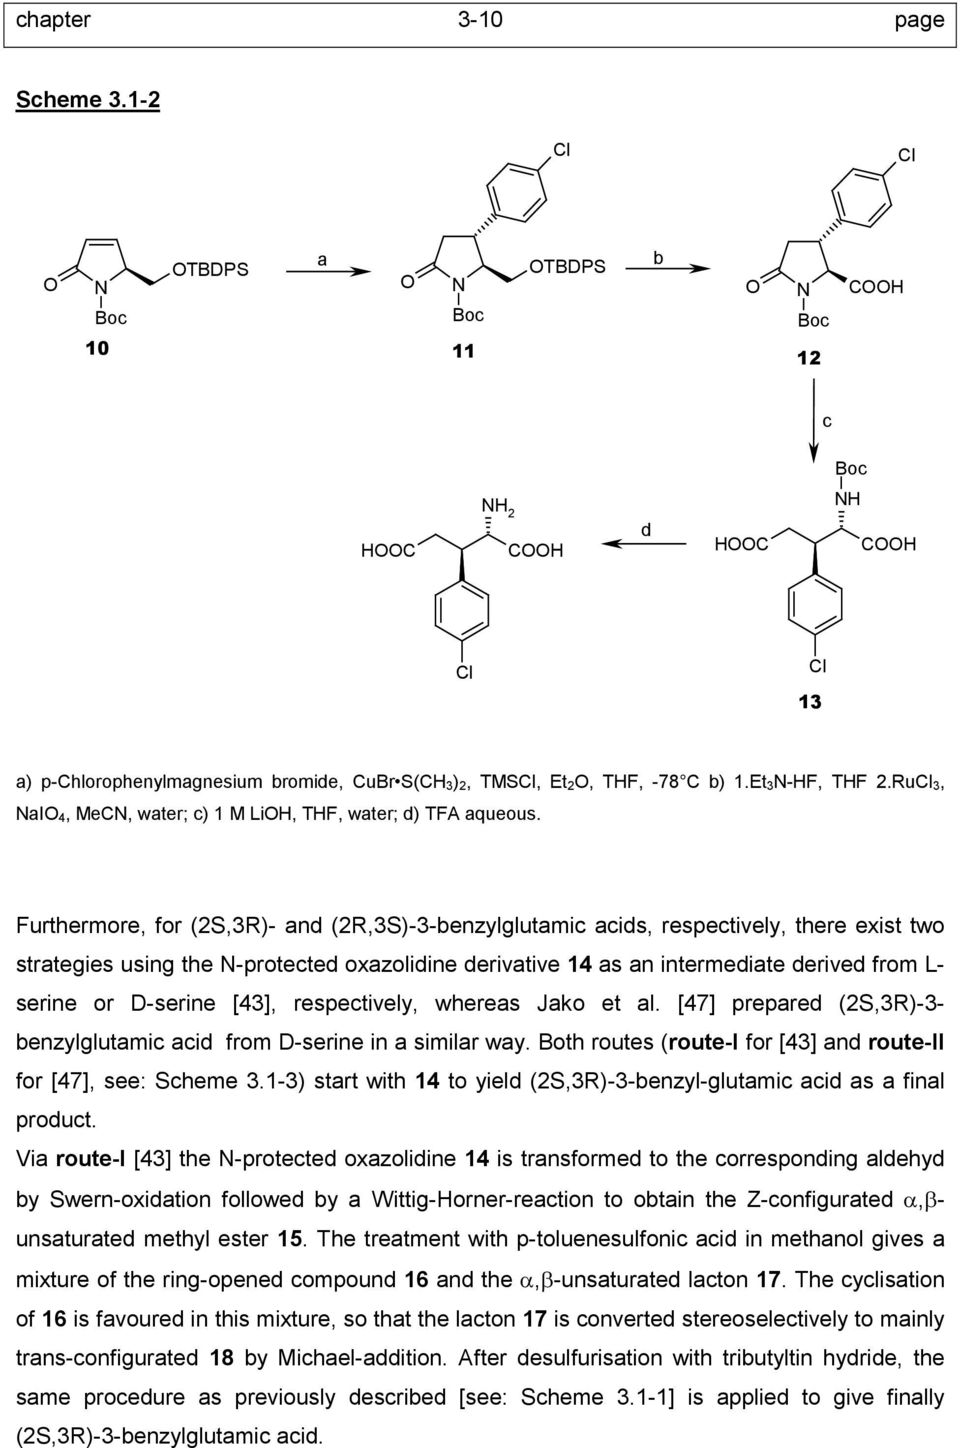 Furthermore, for (2S,3R)- and (2R,3S)-3-benzylglutamic acids, respectively, there exist two strategies using the -protected oxazolidine derivative 14 as an intermediate derived from L- serine or